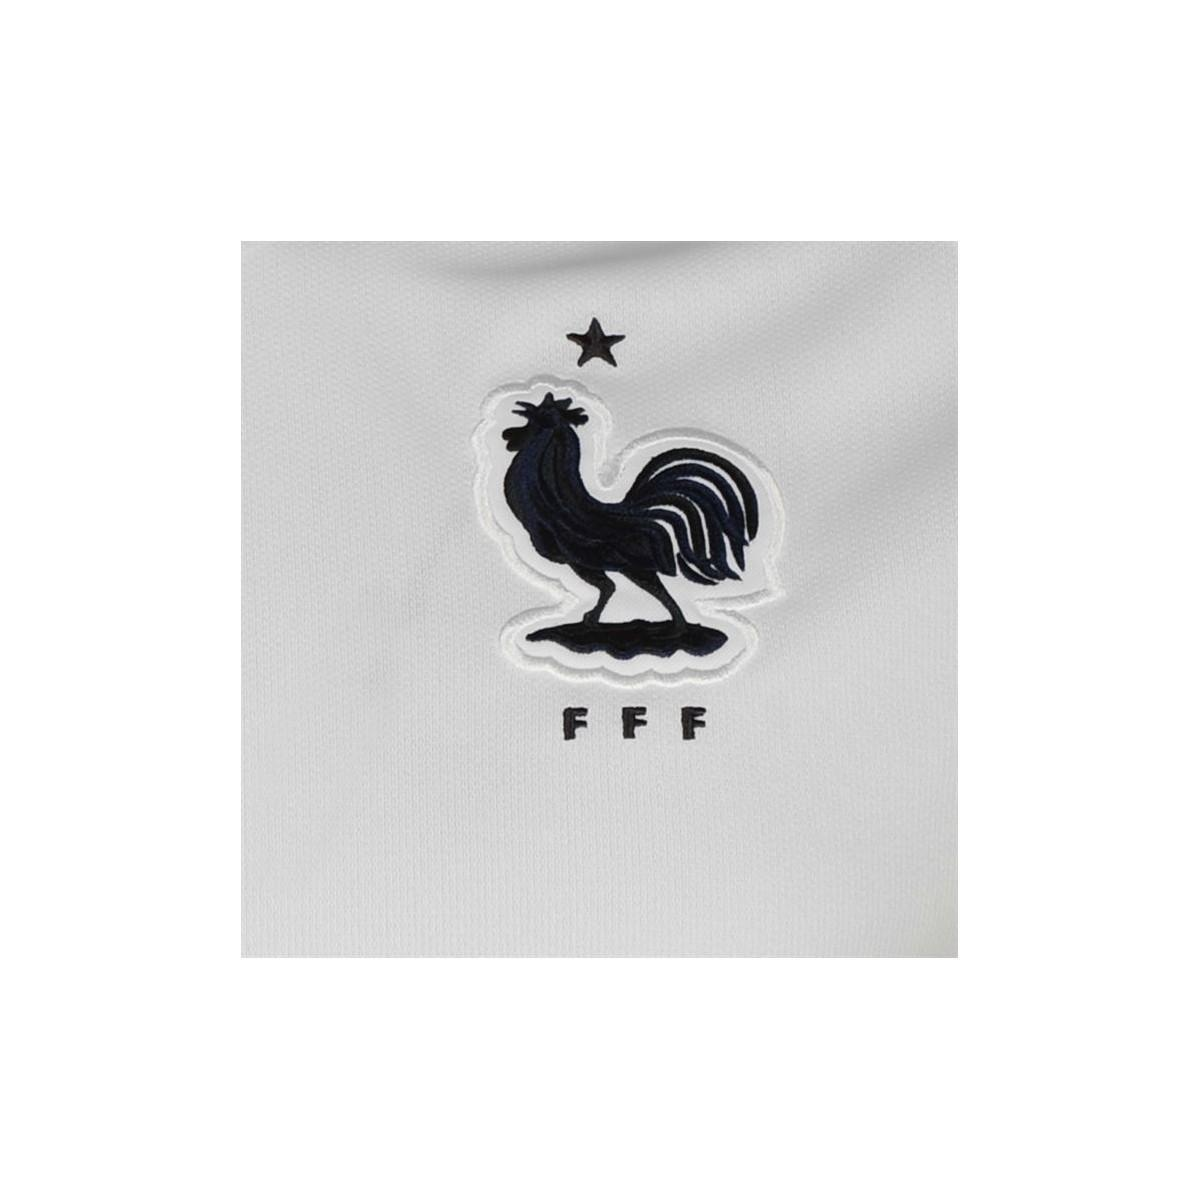 628a4a170f79 Nike 2016-2017 France Away Football Shirt Men s T Shirt In White in ...